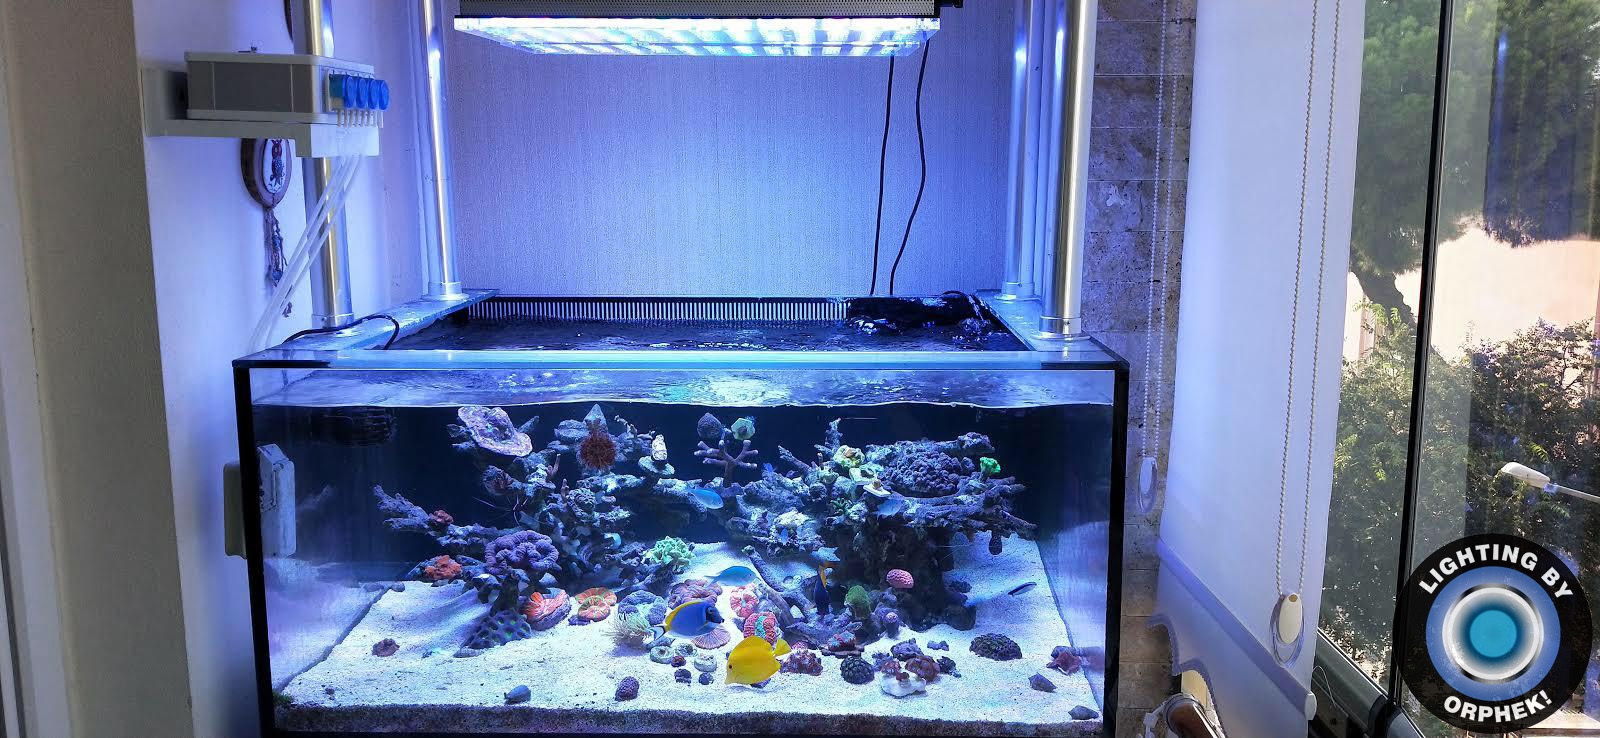 atlantik v4 beste soutwatertenk LED-lig 2020